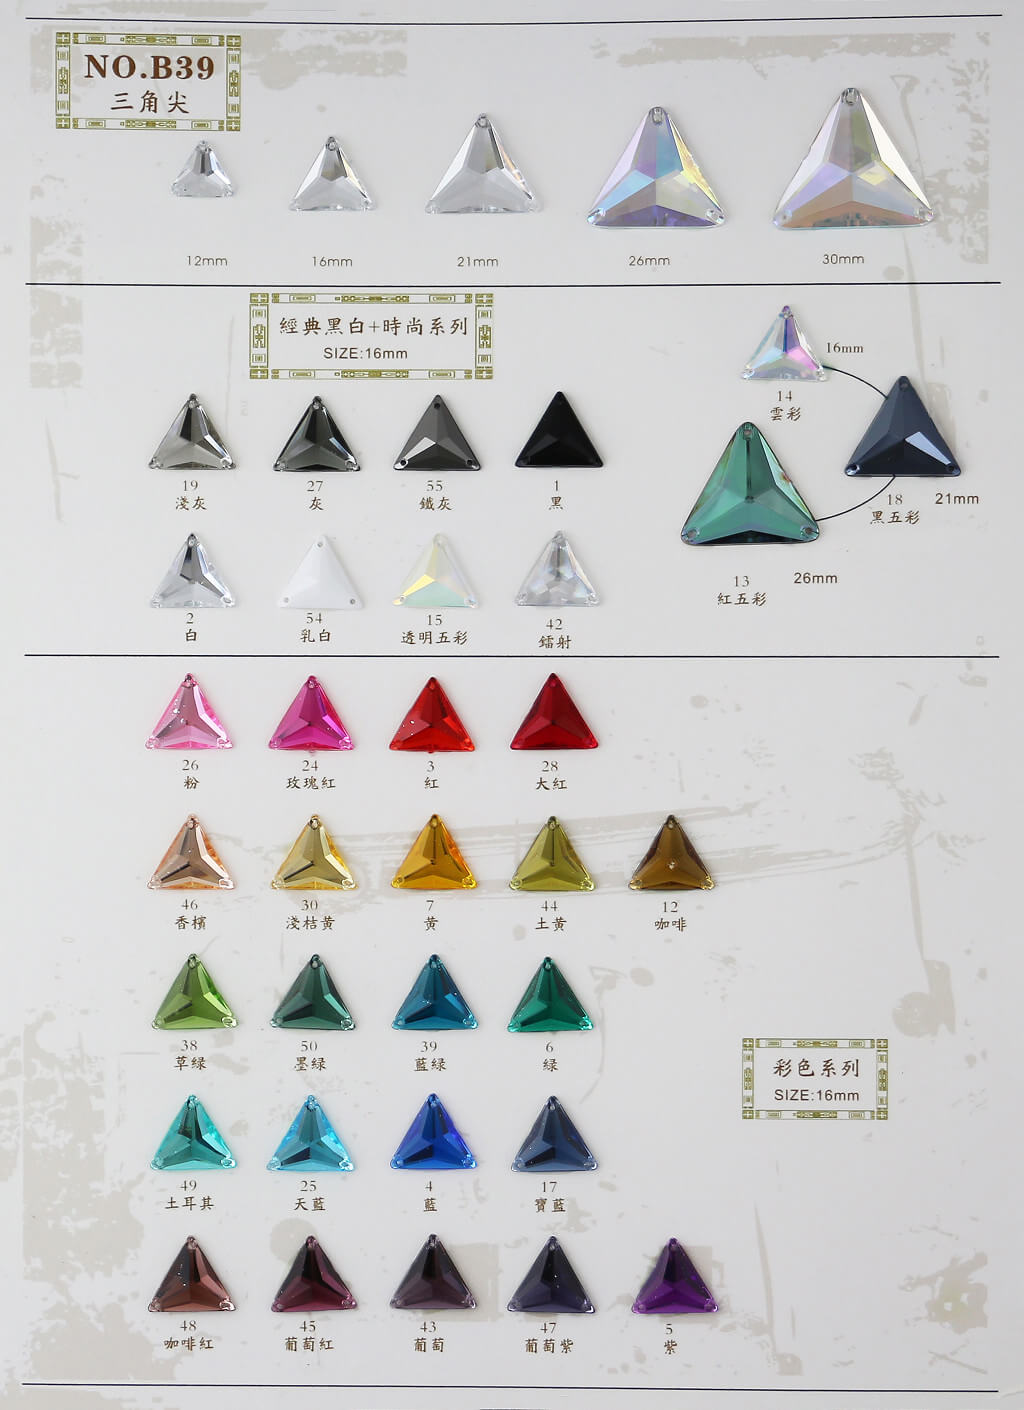 sew on rhinestones in bulk wholesale catalogue